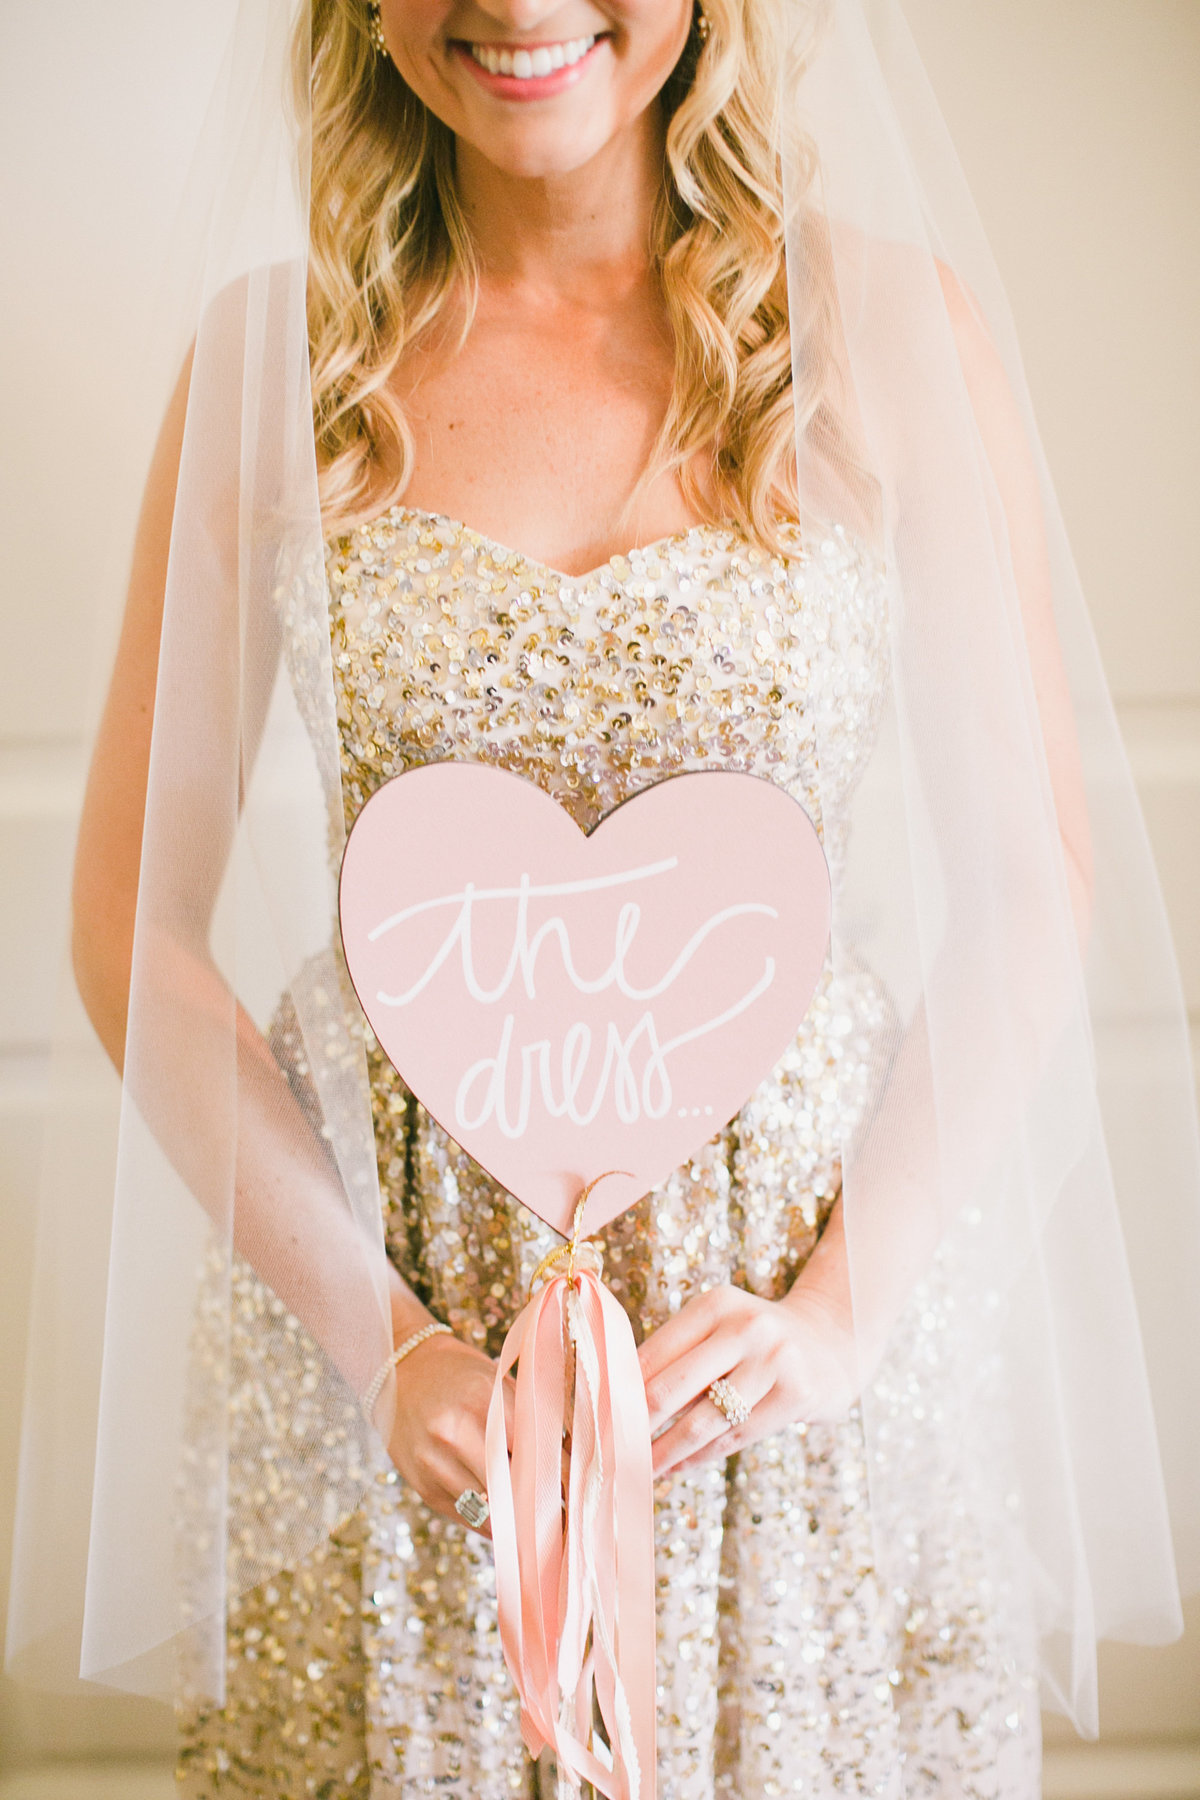 ahmason-ranch-santa-monica-calabasas-california-wedding-photographer-242